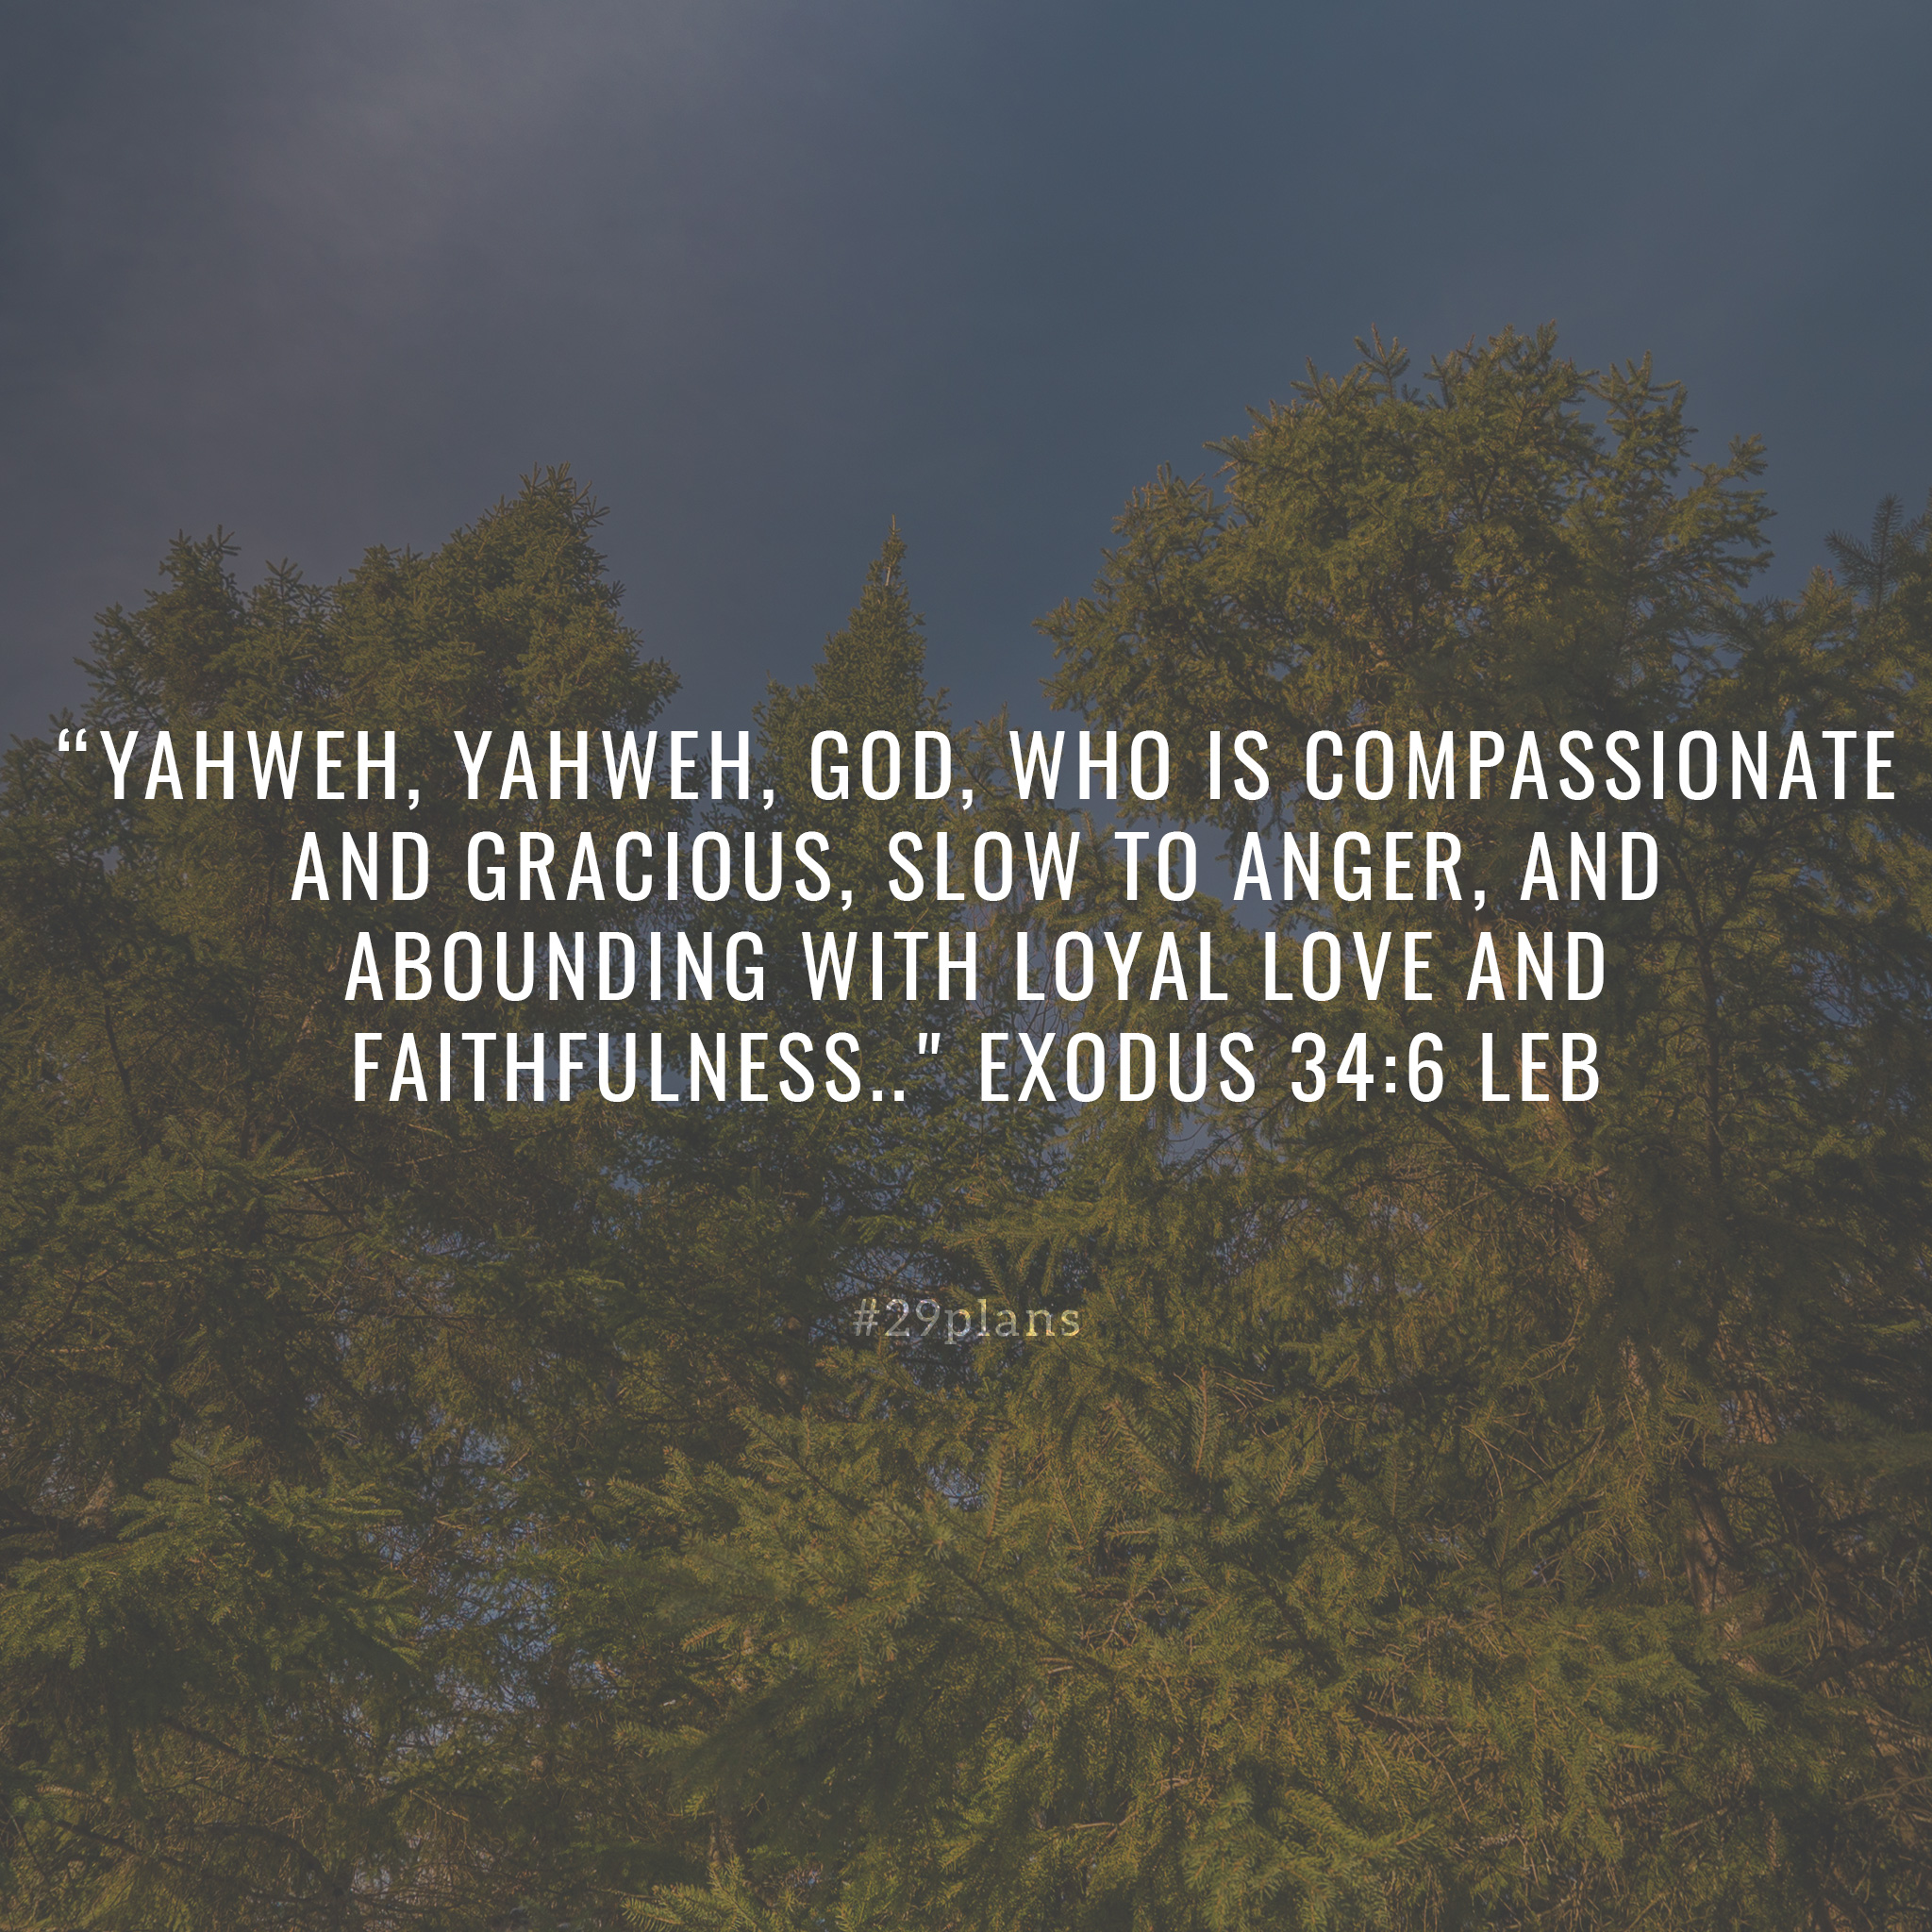 Today's Guide — 03.30.18 — Yahweh